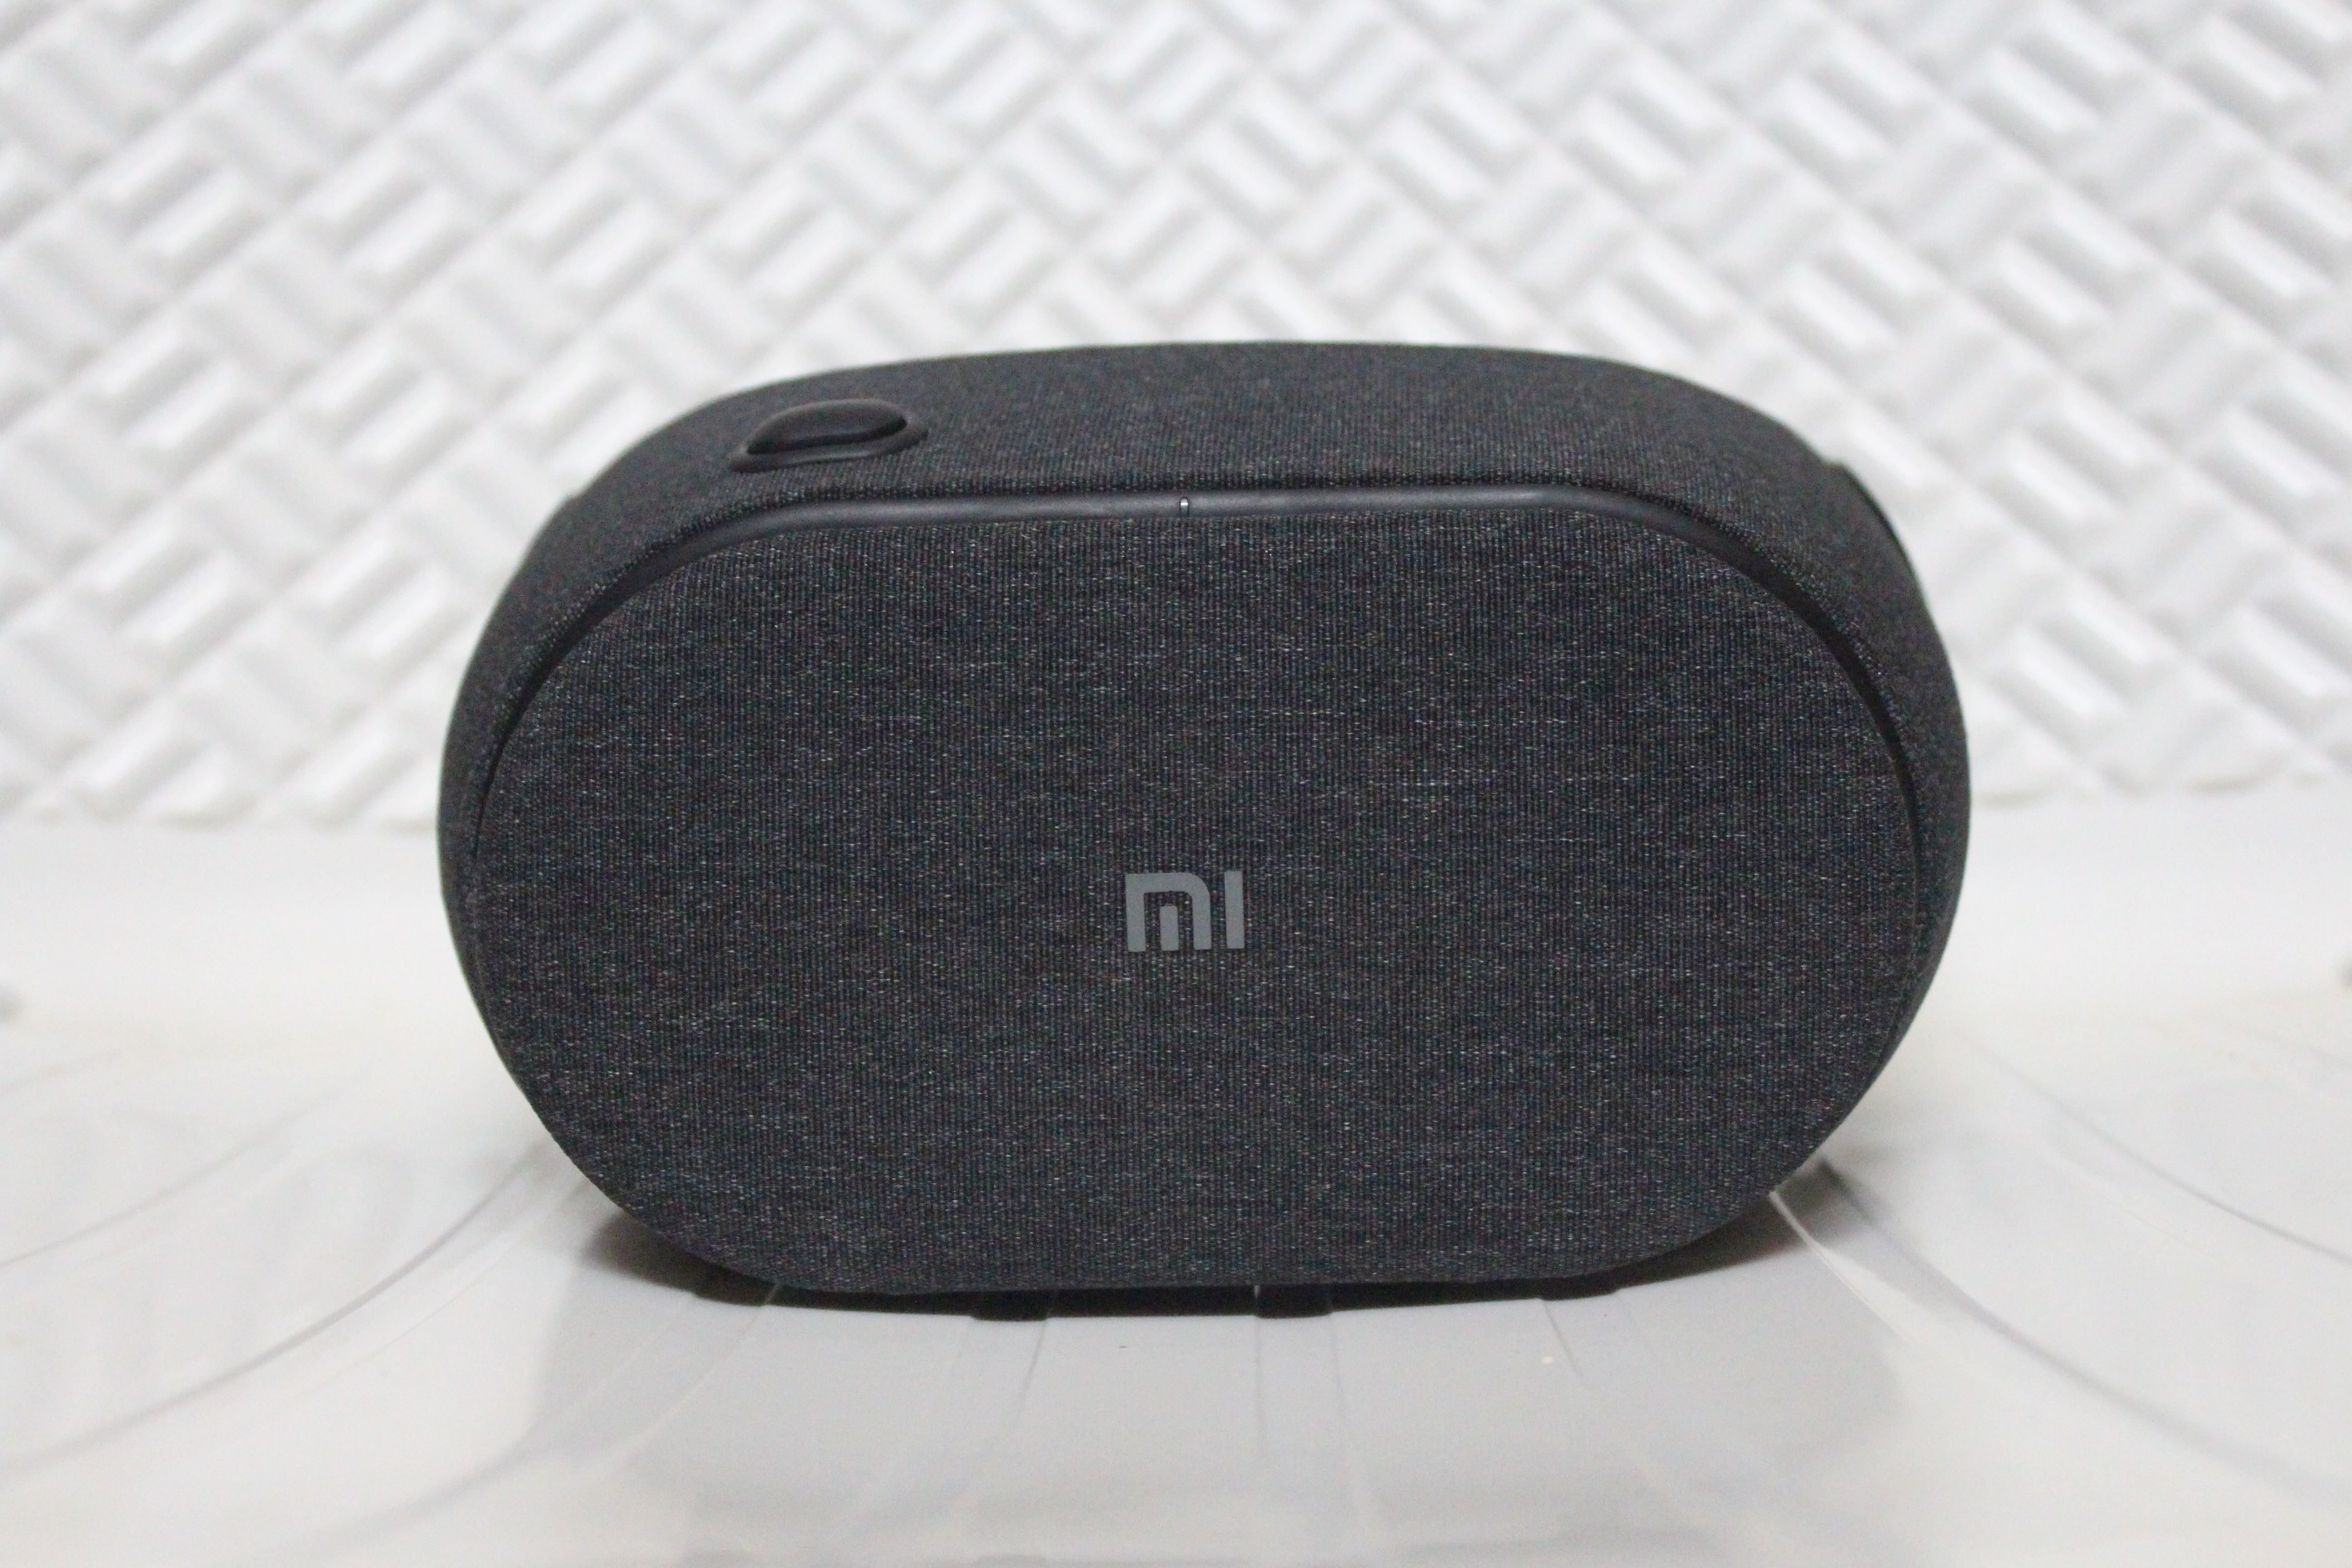 Xiaomi Mi VR Play 2 Review: The Cheapest VR Headset With